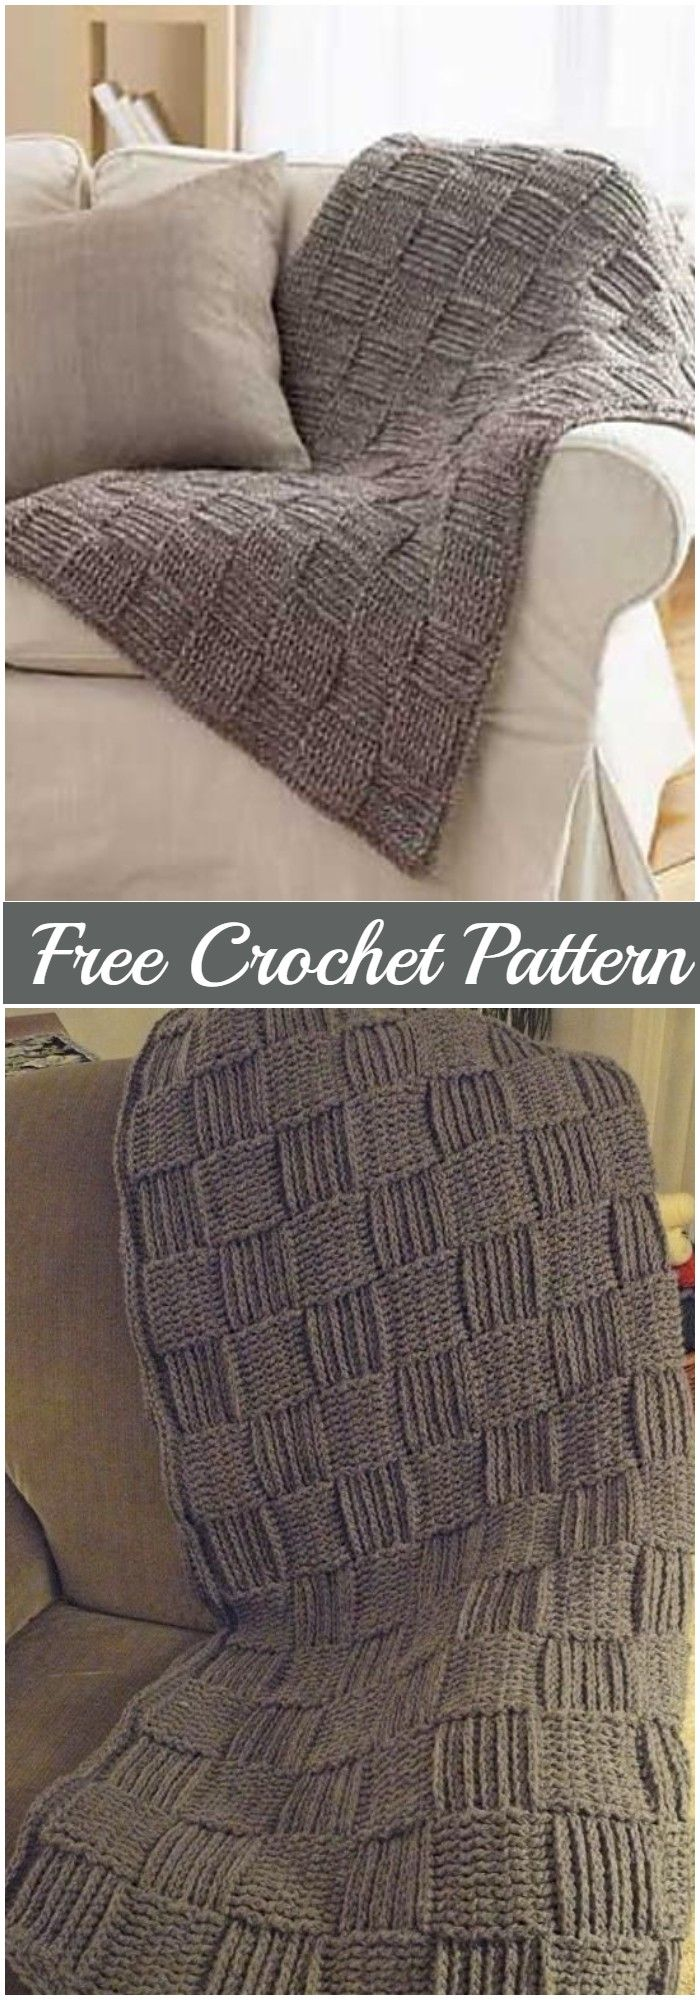 Explore this list of best free crochet afghan patterns. They will not only keep you warm in the cold but also give a decorative touch to your room. #freecrochetpatterns#crochetafghanpatterns #afghanpatterns